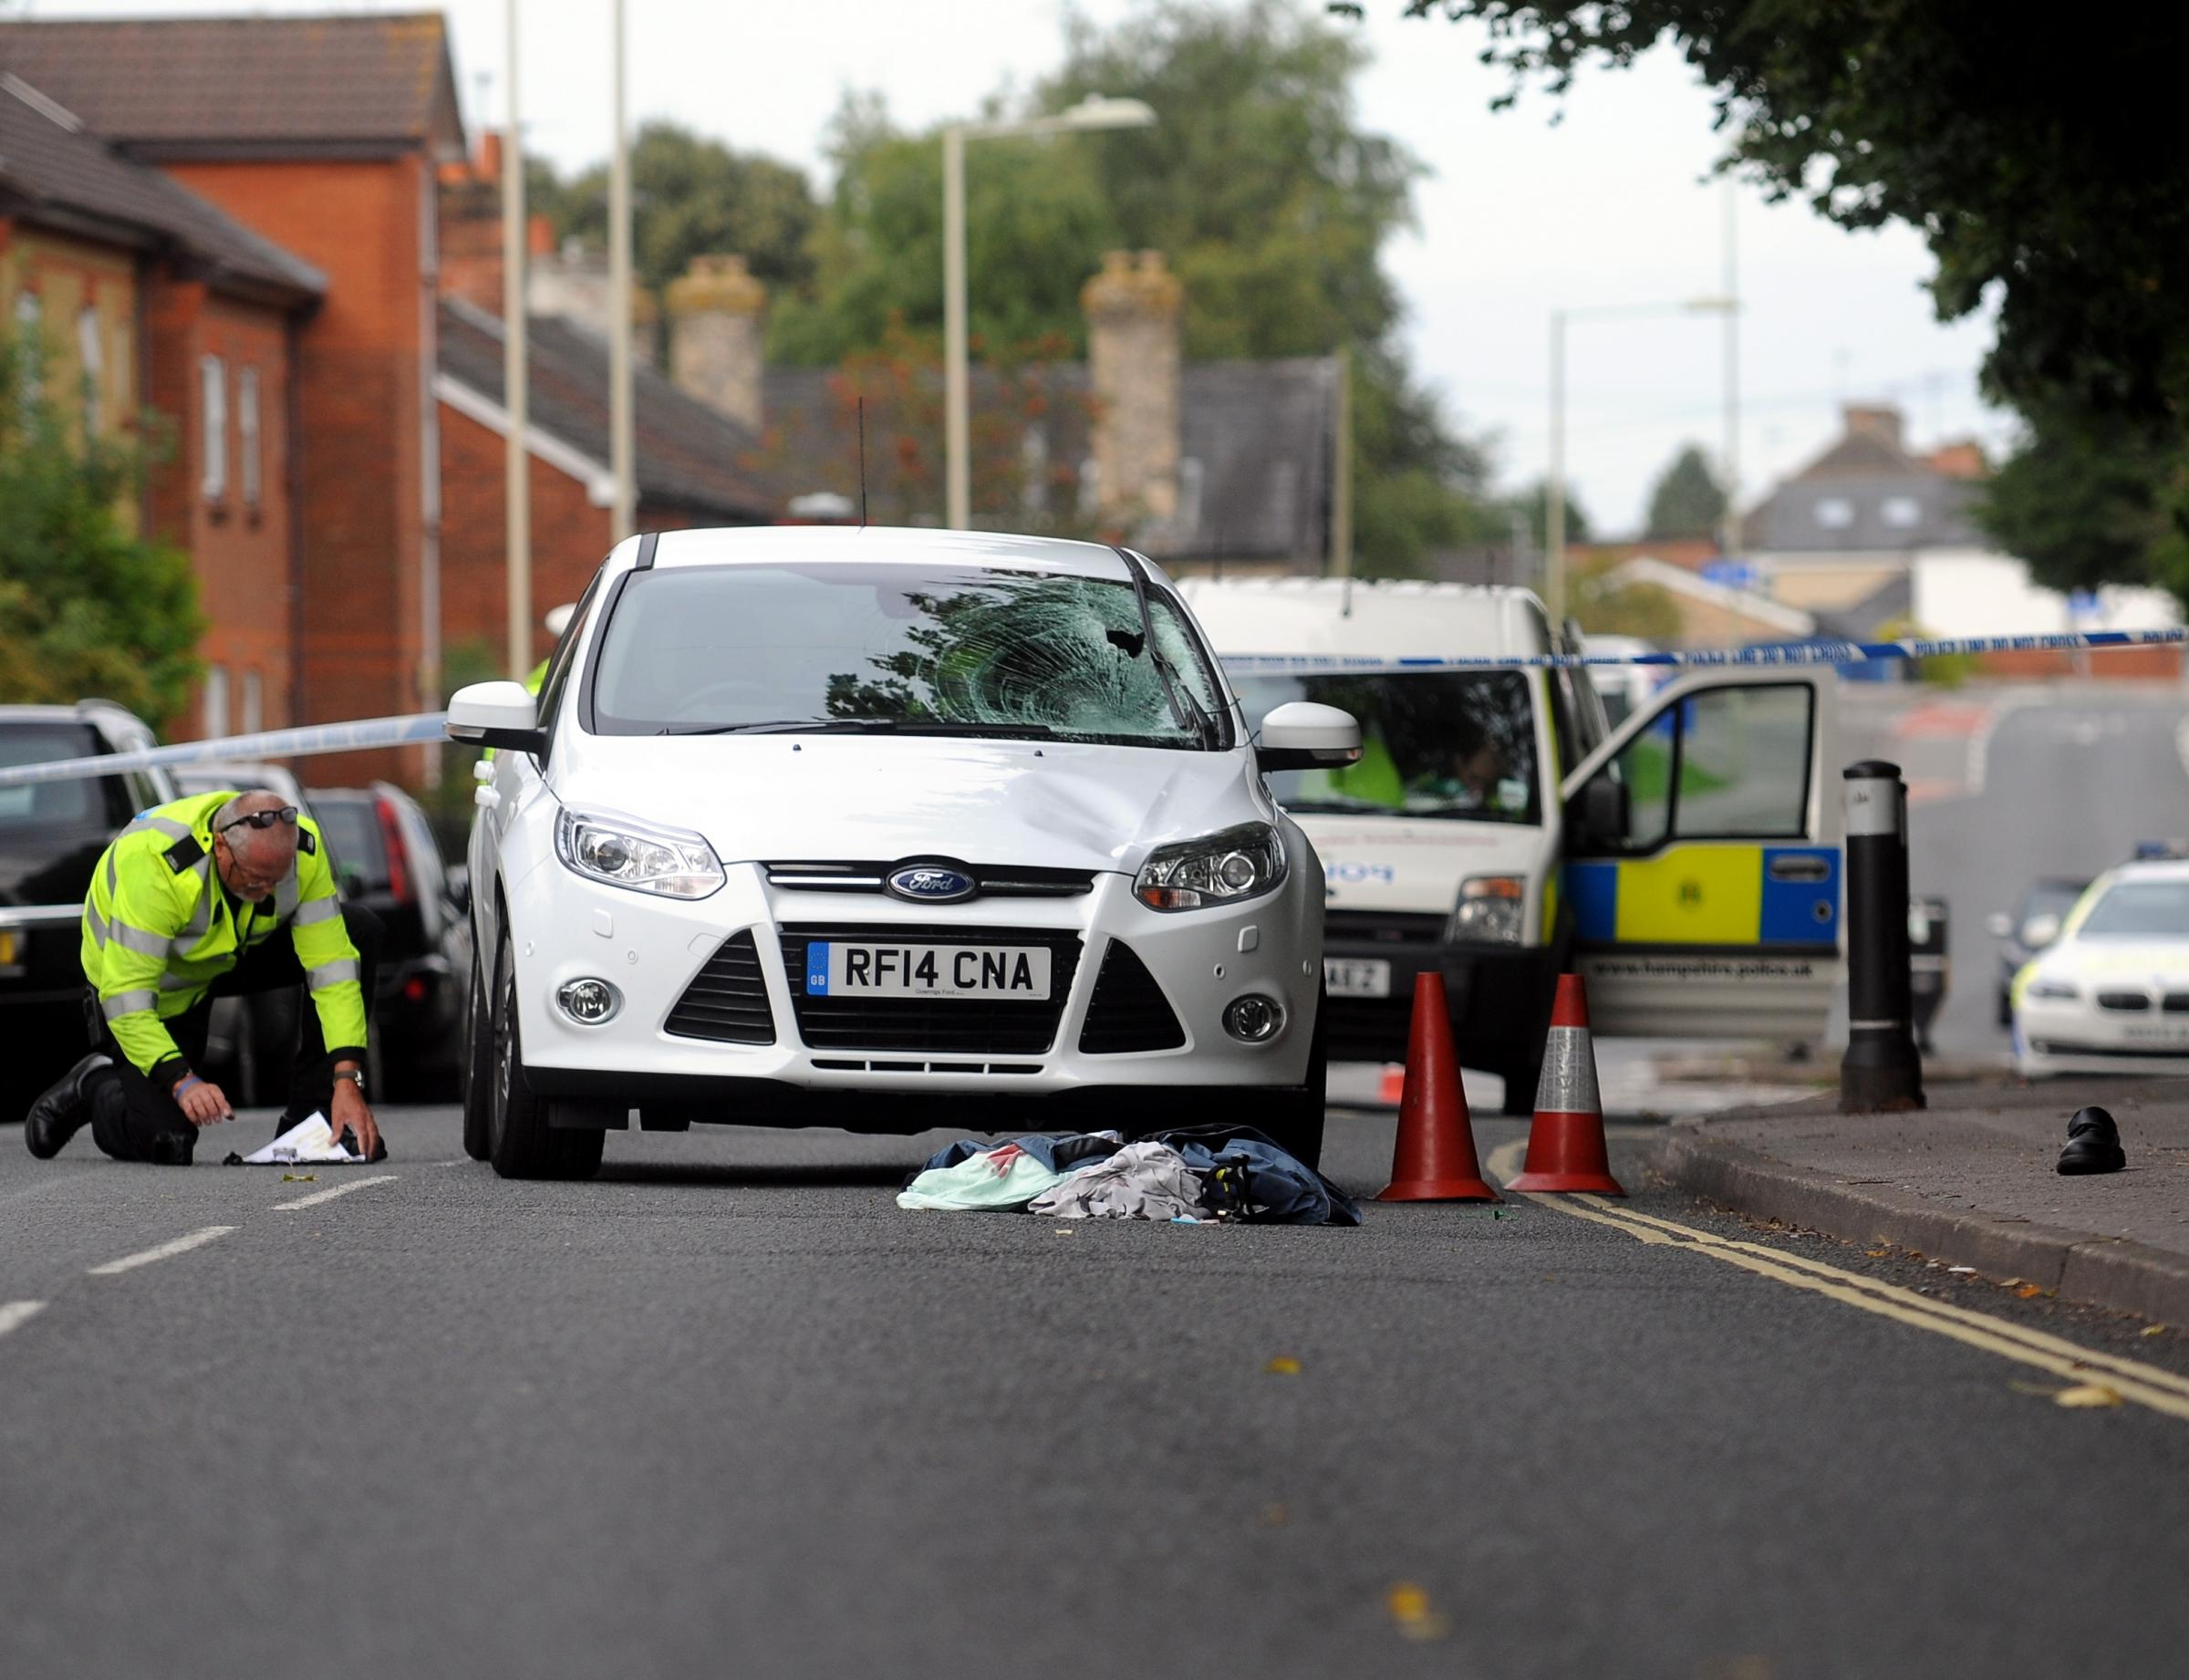 Fatal crash driver may have been dazzled by sun